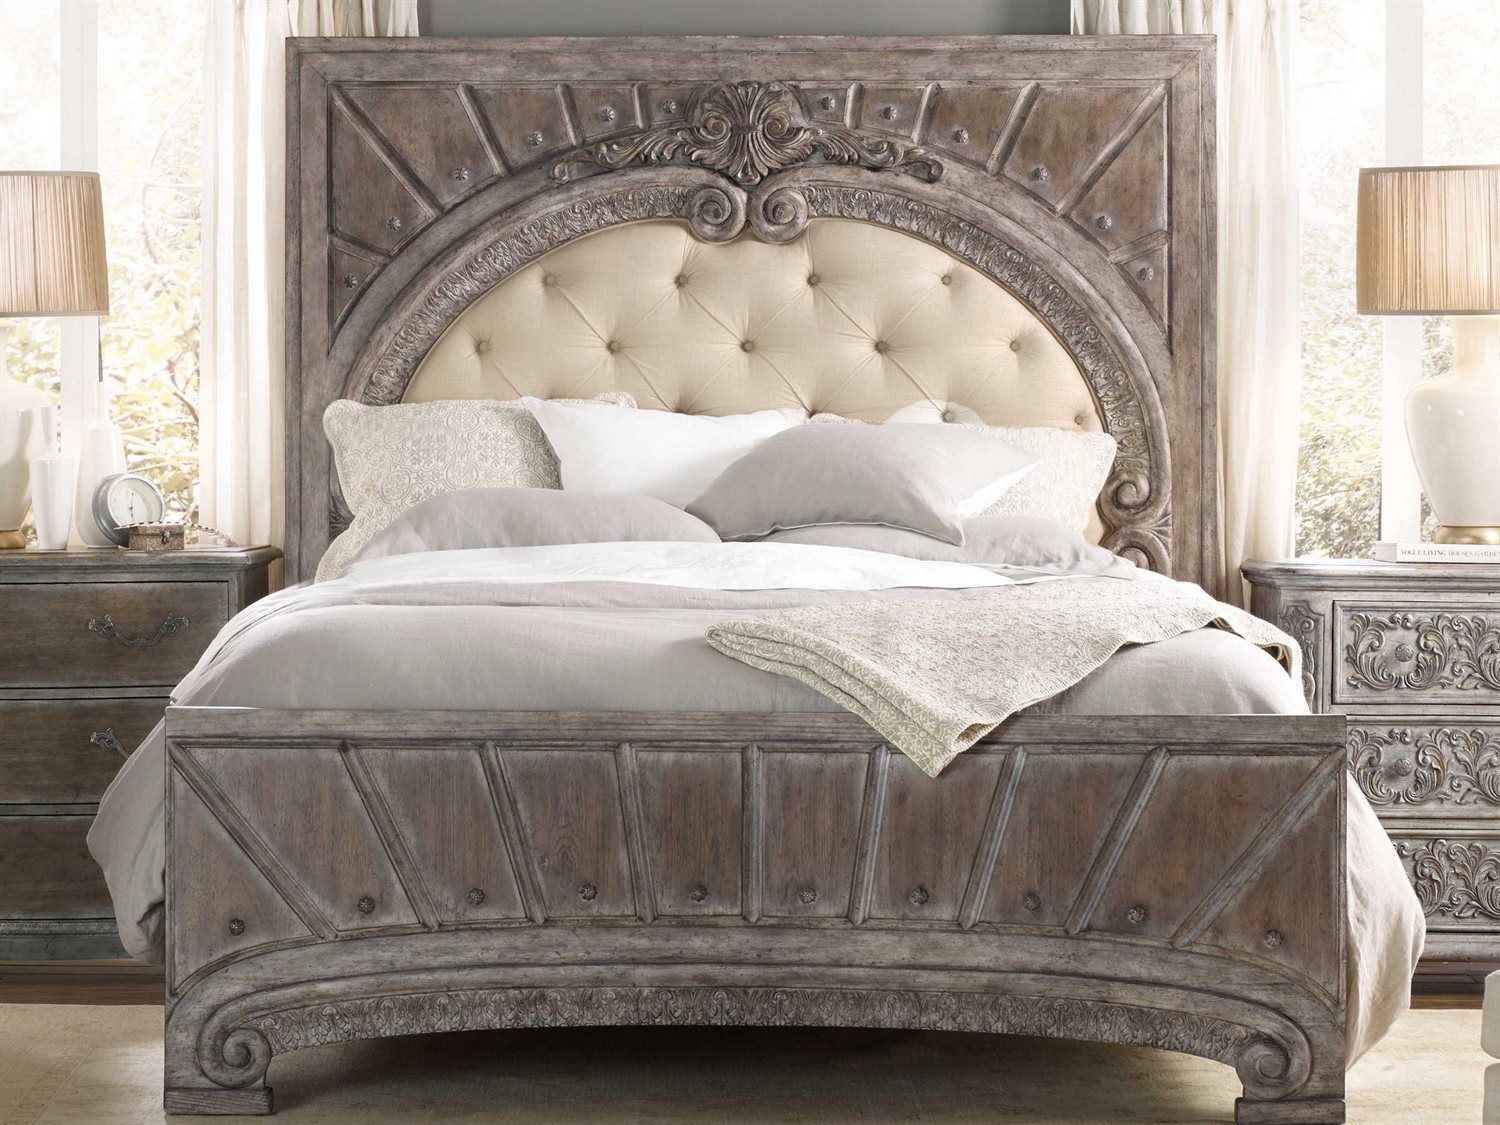 Hooker Furniture True Vintage Soft Driftwood King Size Panel Bed New Fancy Bedroom Sets Inspiration Design